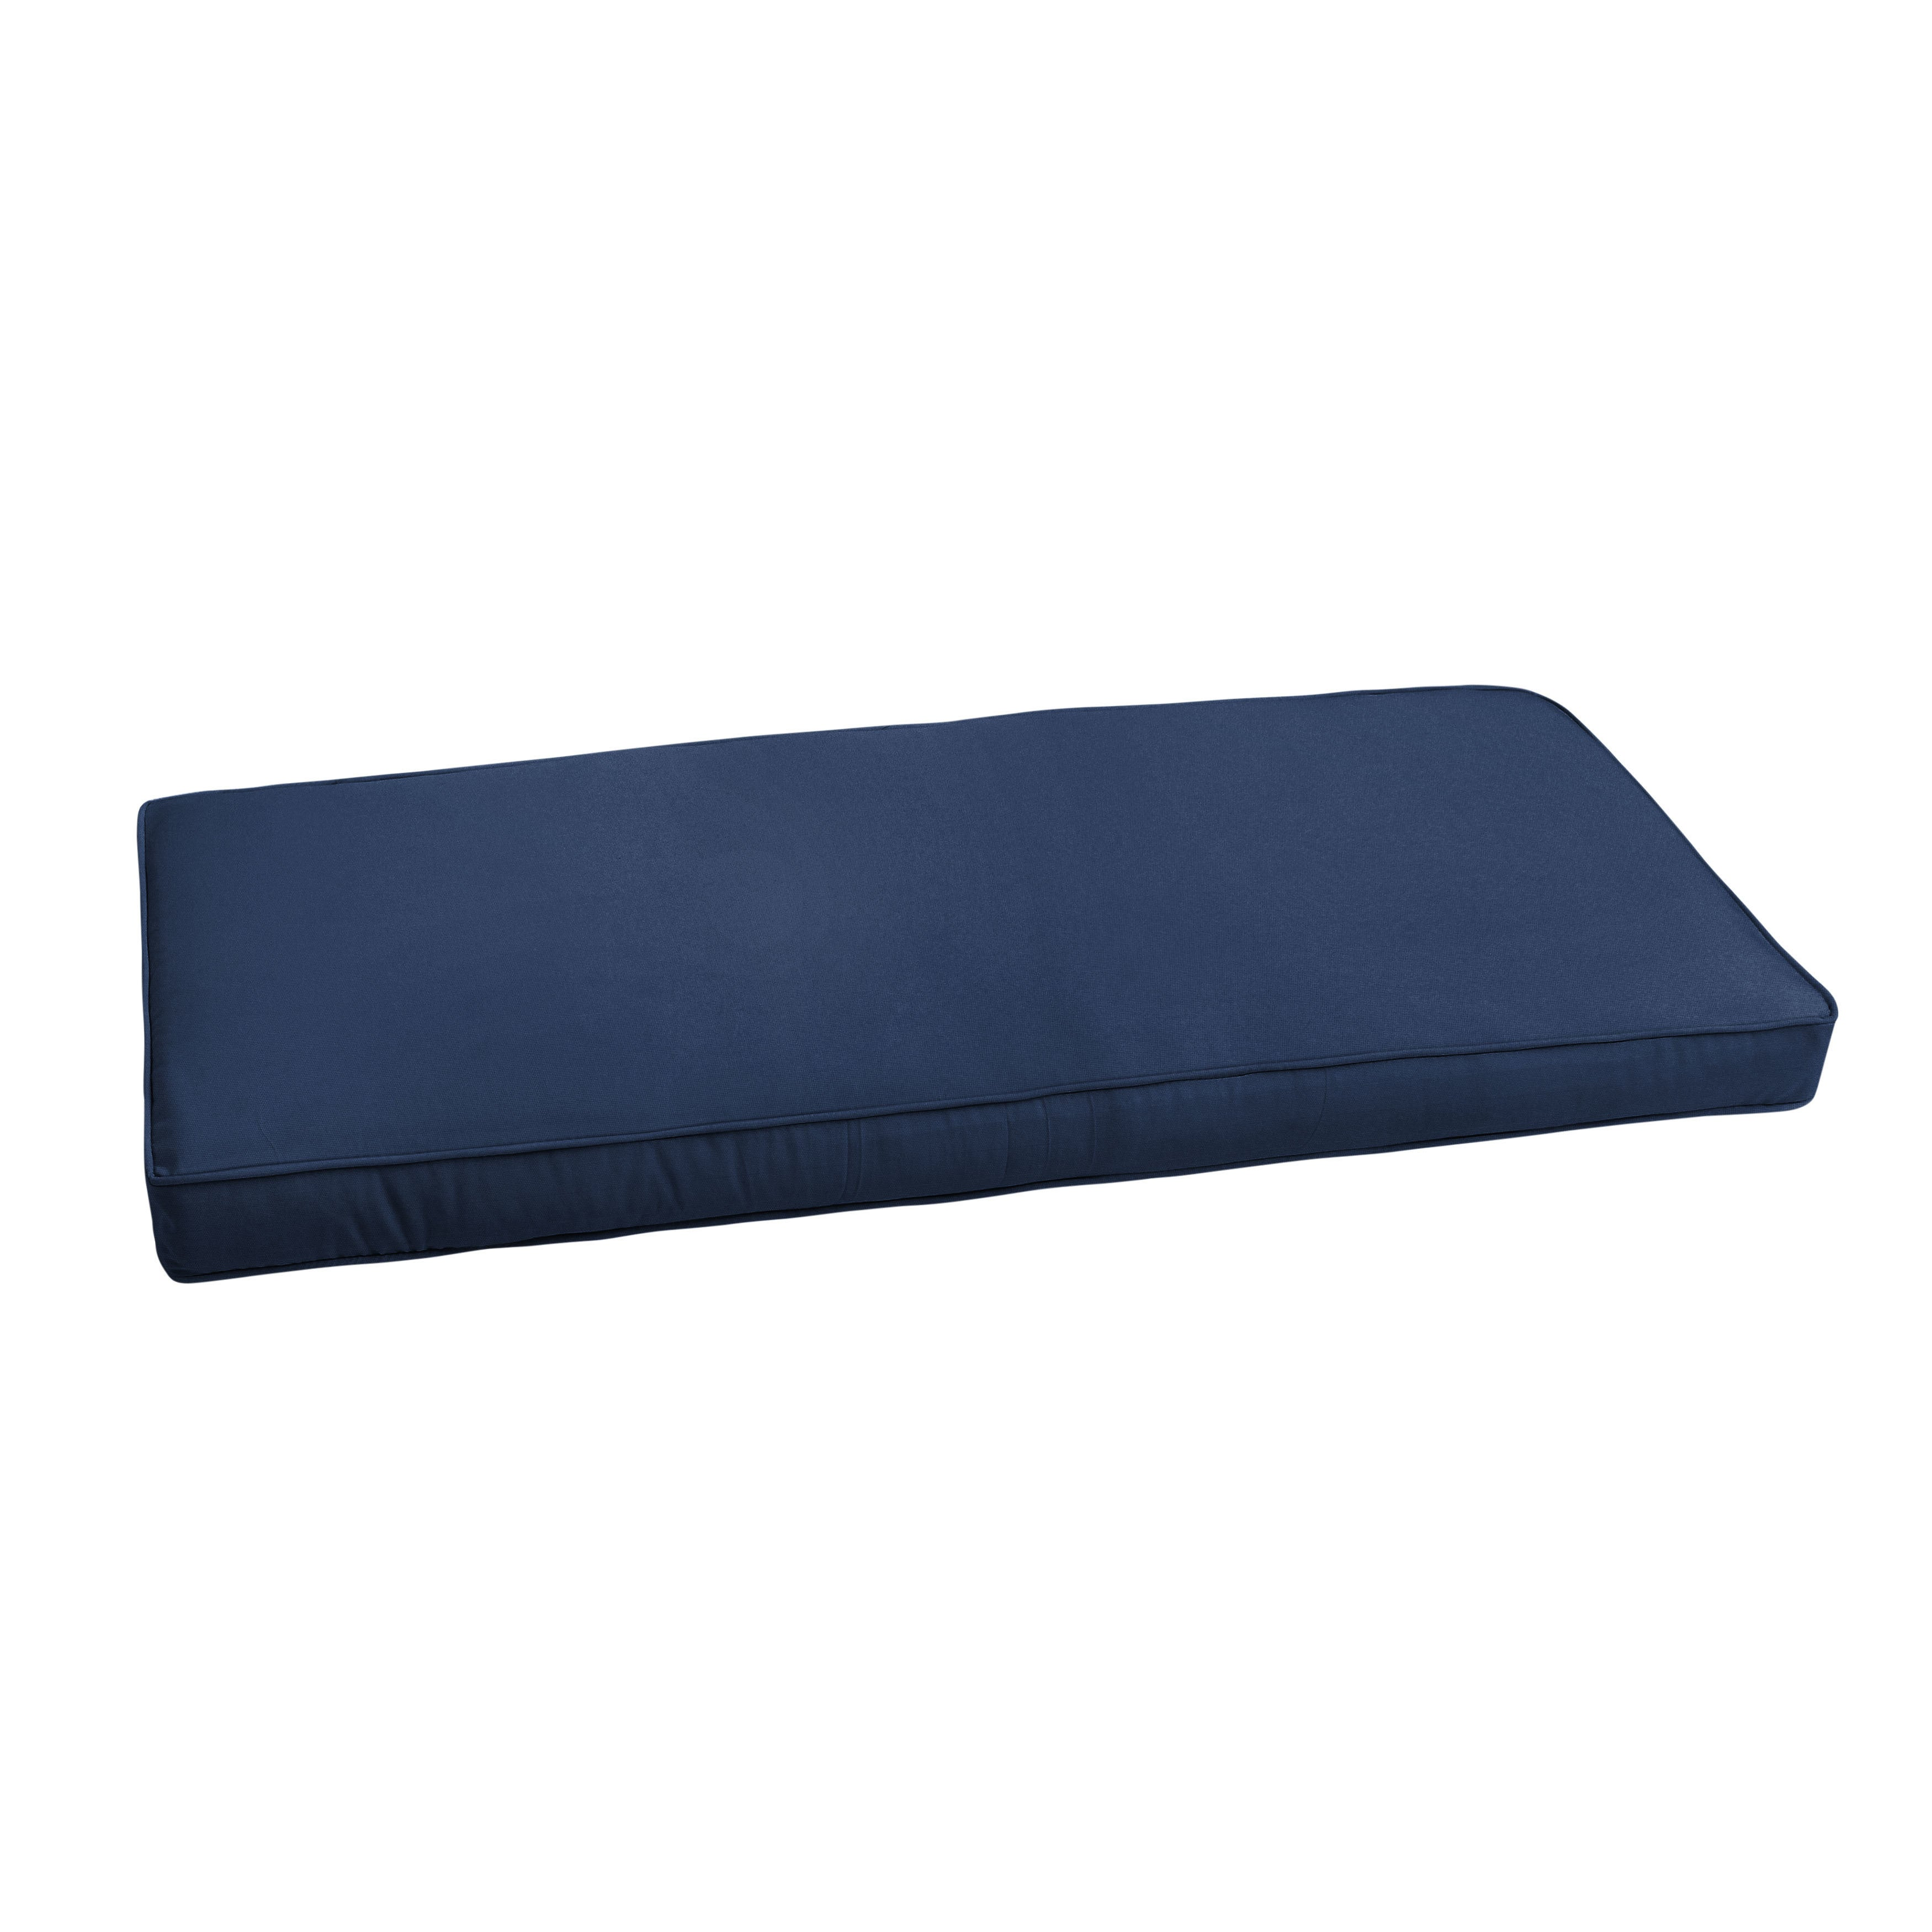 sunbrella canvas navy blue indoor outdoor bench cushion 55 to 60 by humble haute